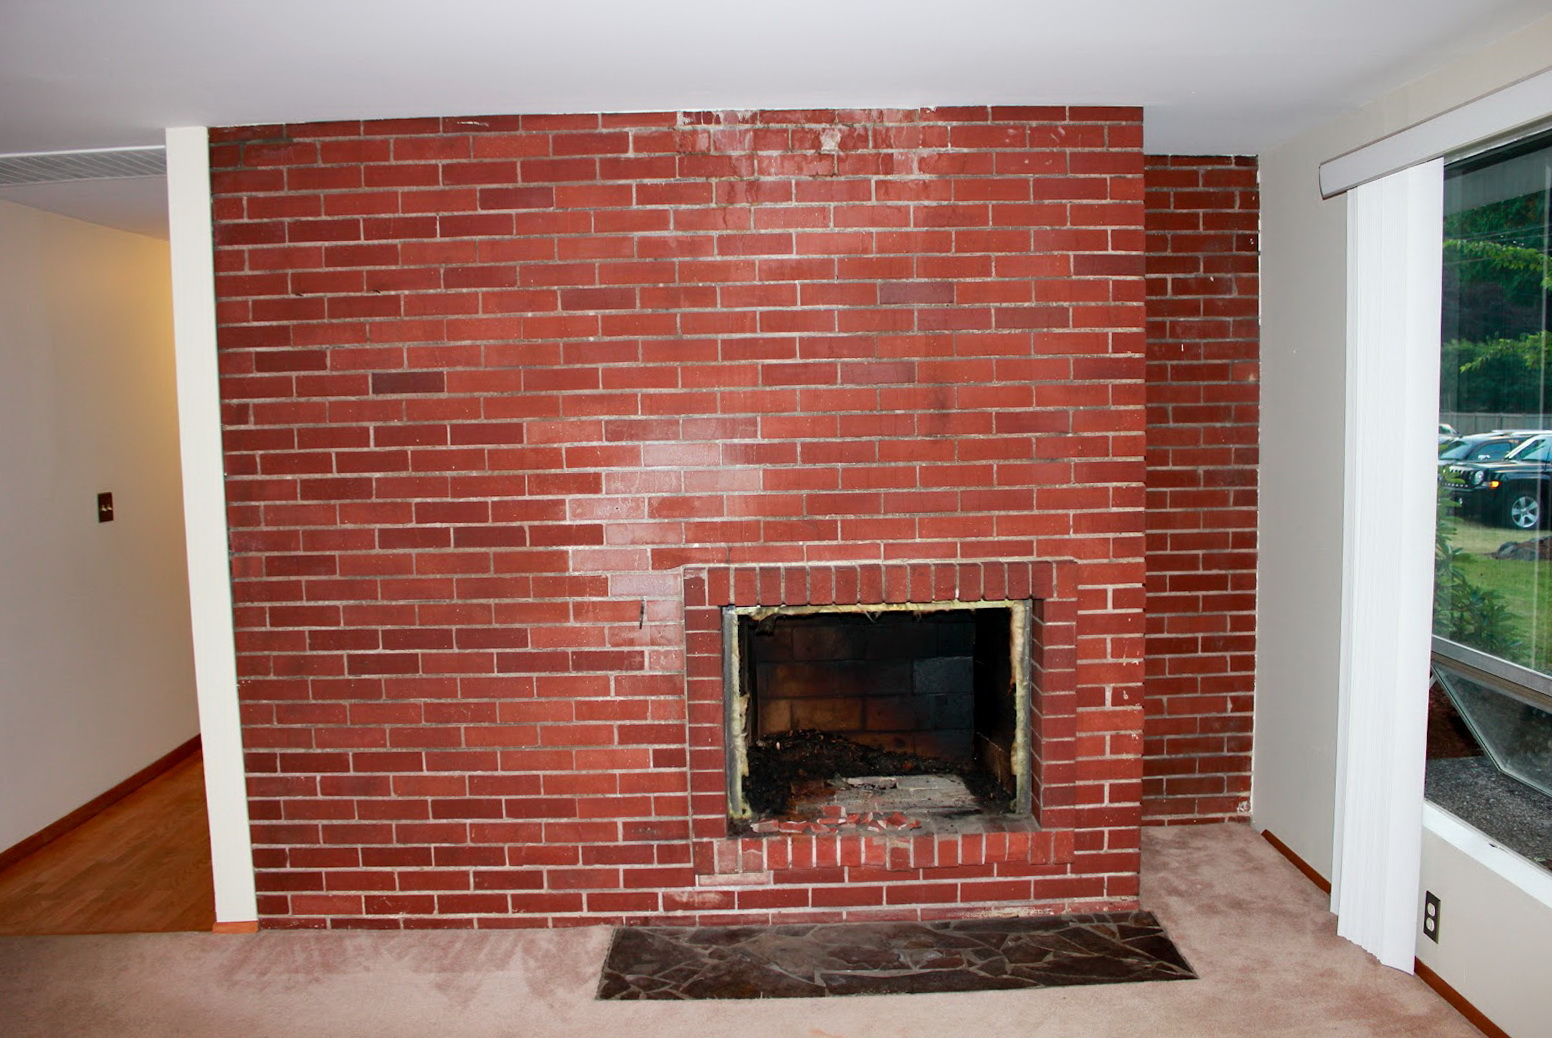 Fireplace brick paint colors home design ideas for Fireplace paint color ideas